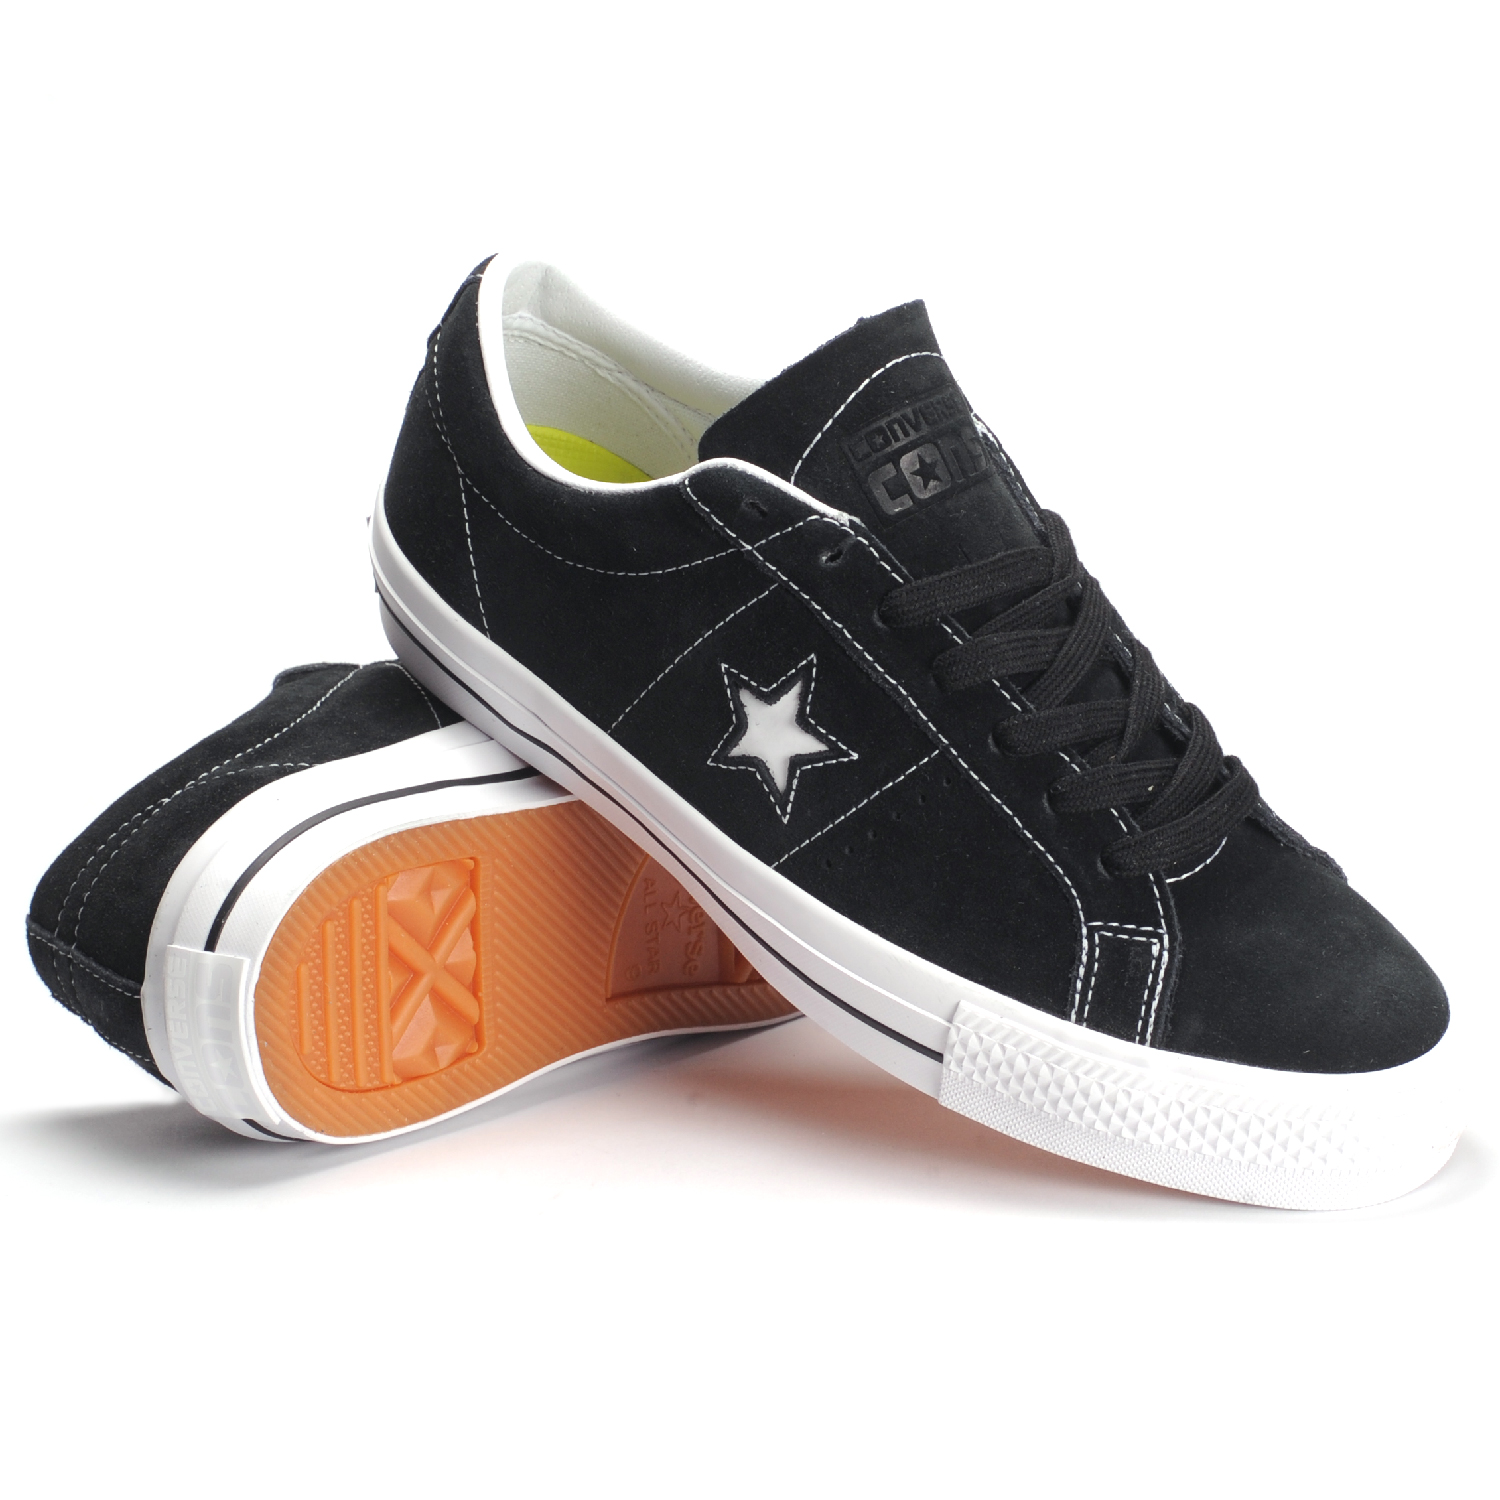 converse shoes for girls black and white. converse shoes for girls black and white